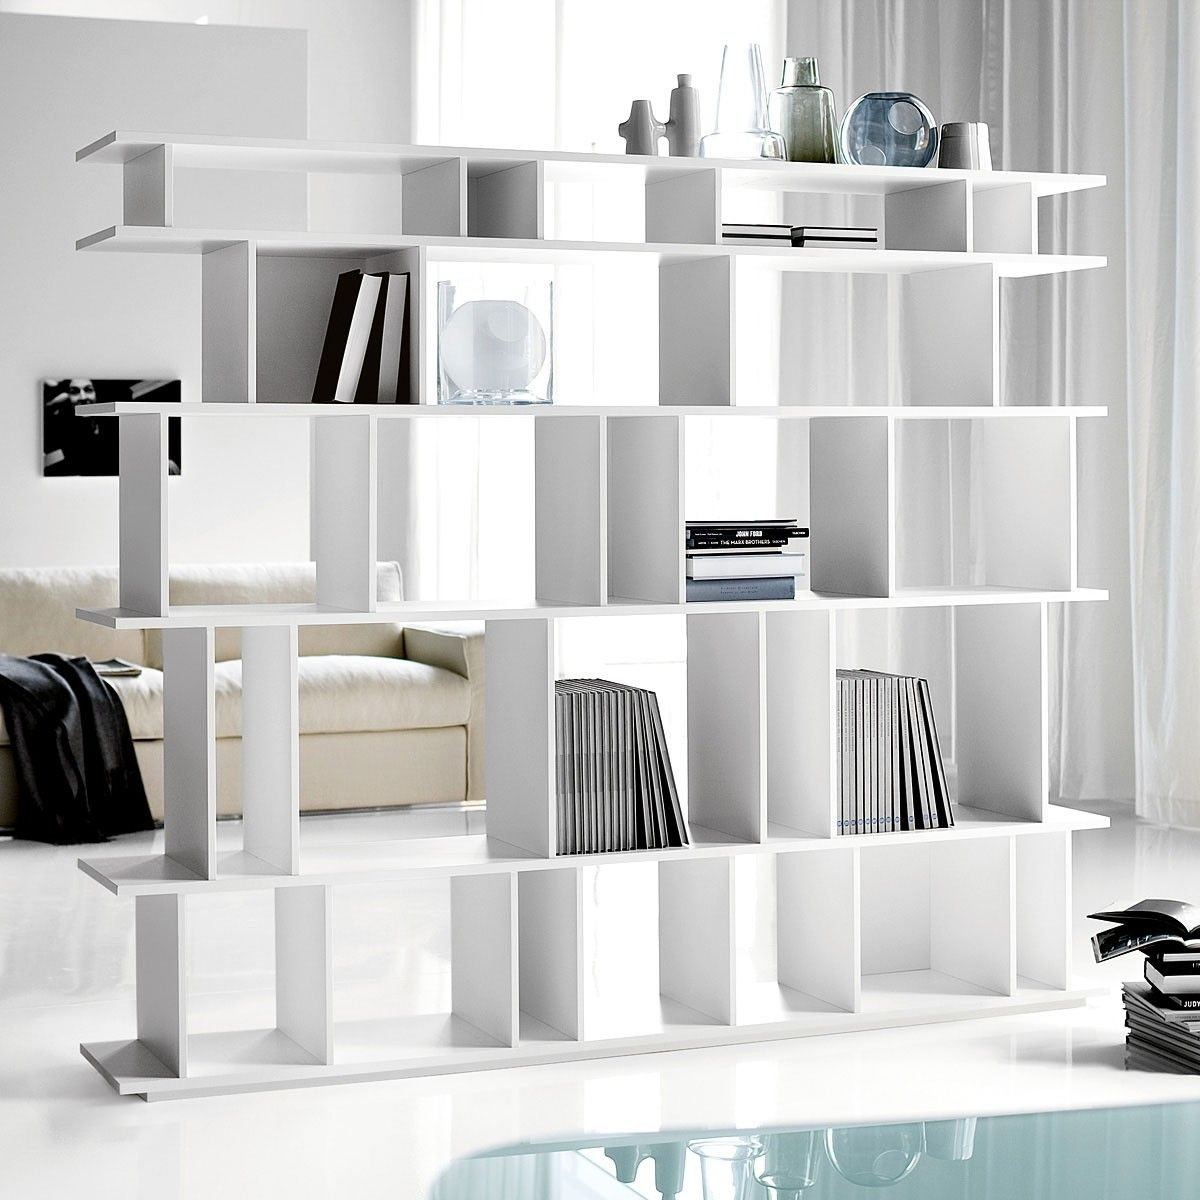 Contemporary Bookshelf Room Divider : Ideas For Bookshelf Room Divider U2013  Creative Home Decoration